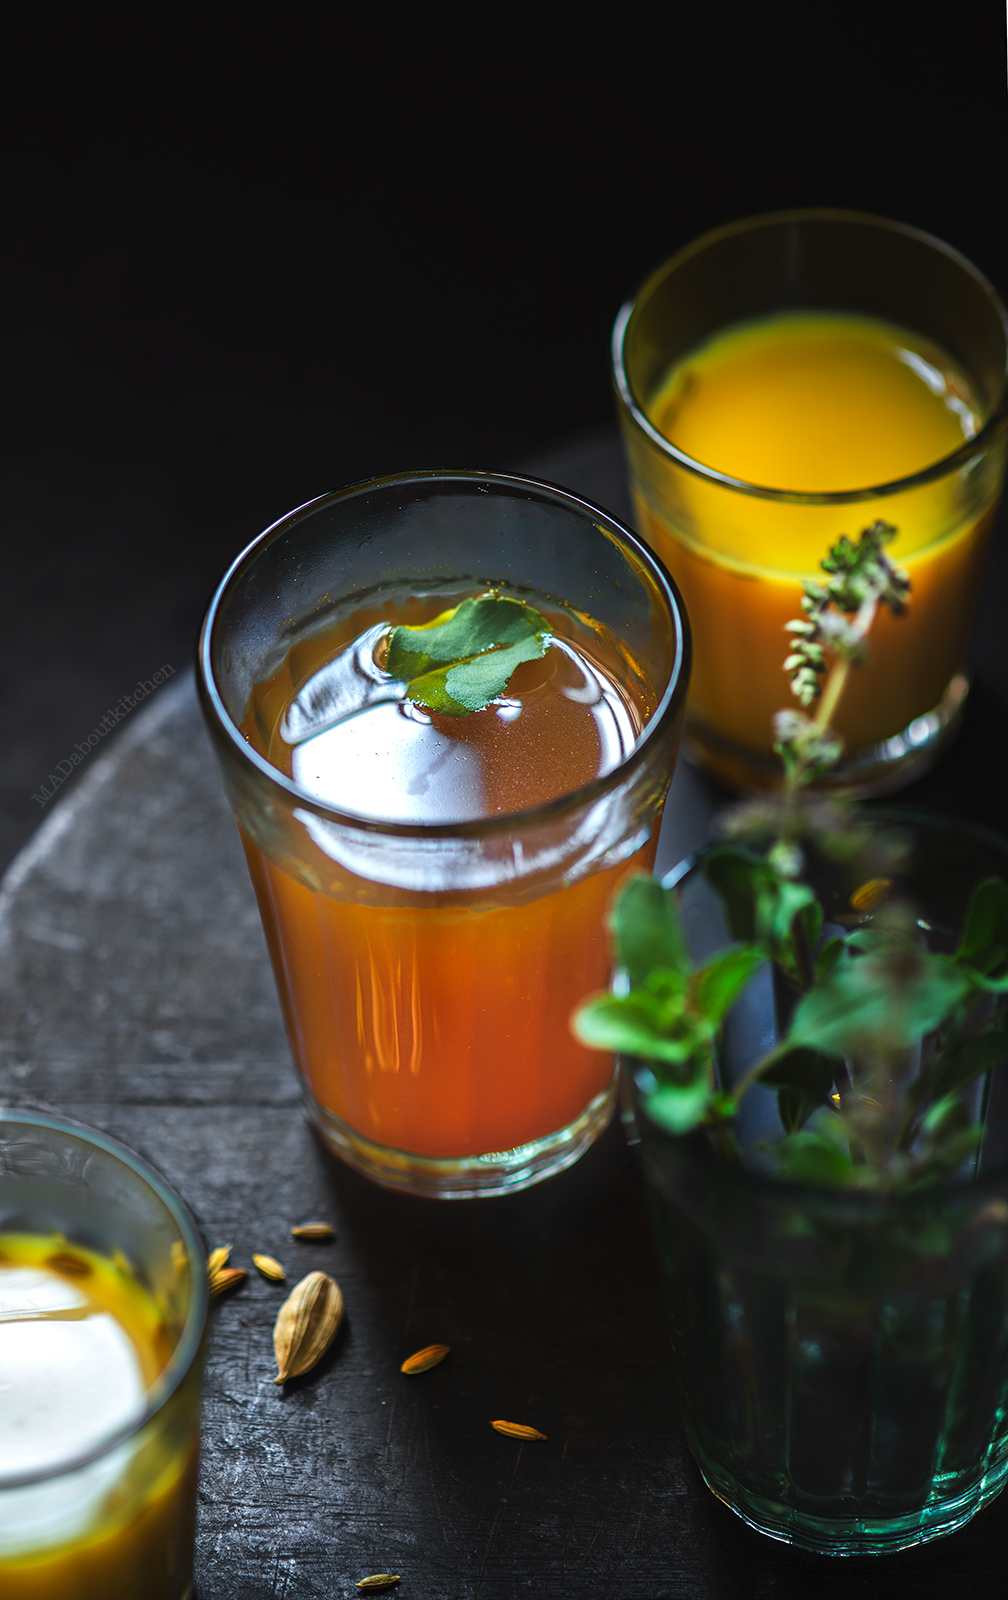 Kashāya or Kada , is a decoction of spices that helps build immunity and the drink that gives you relief from cold and cough when had regularly.